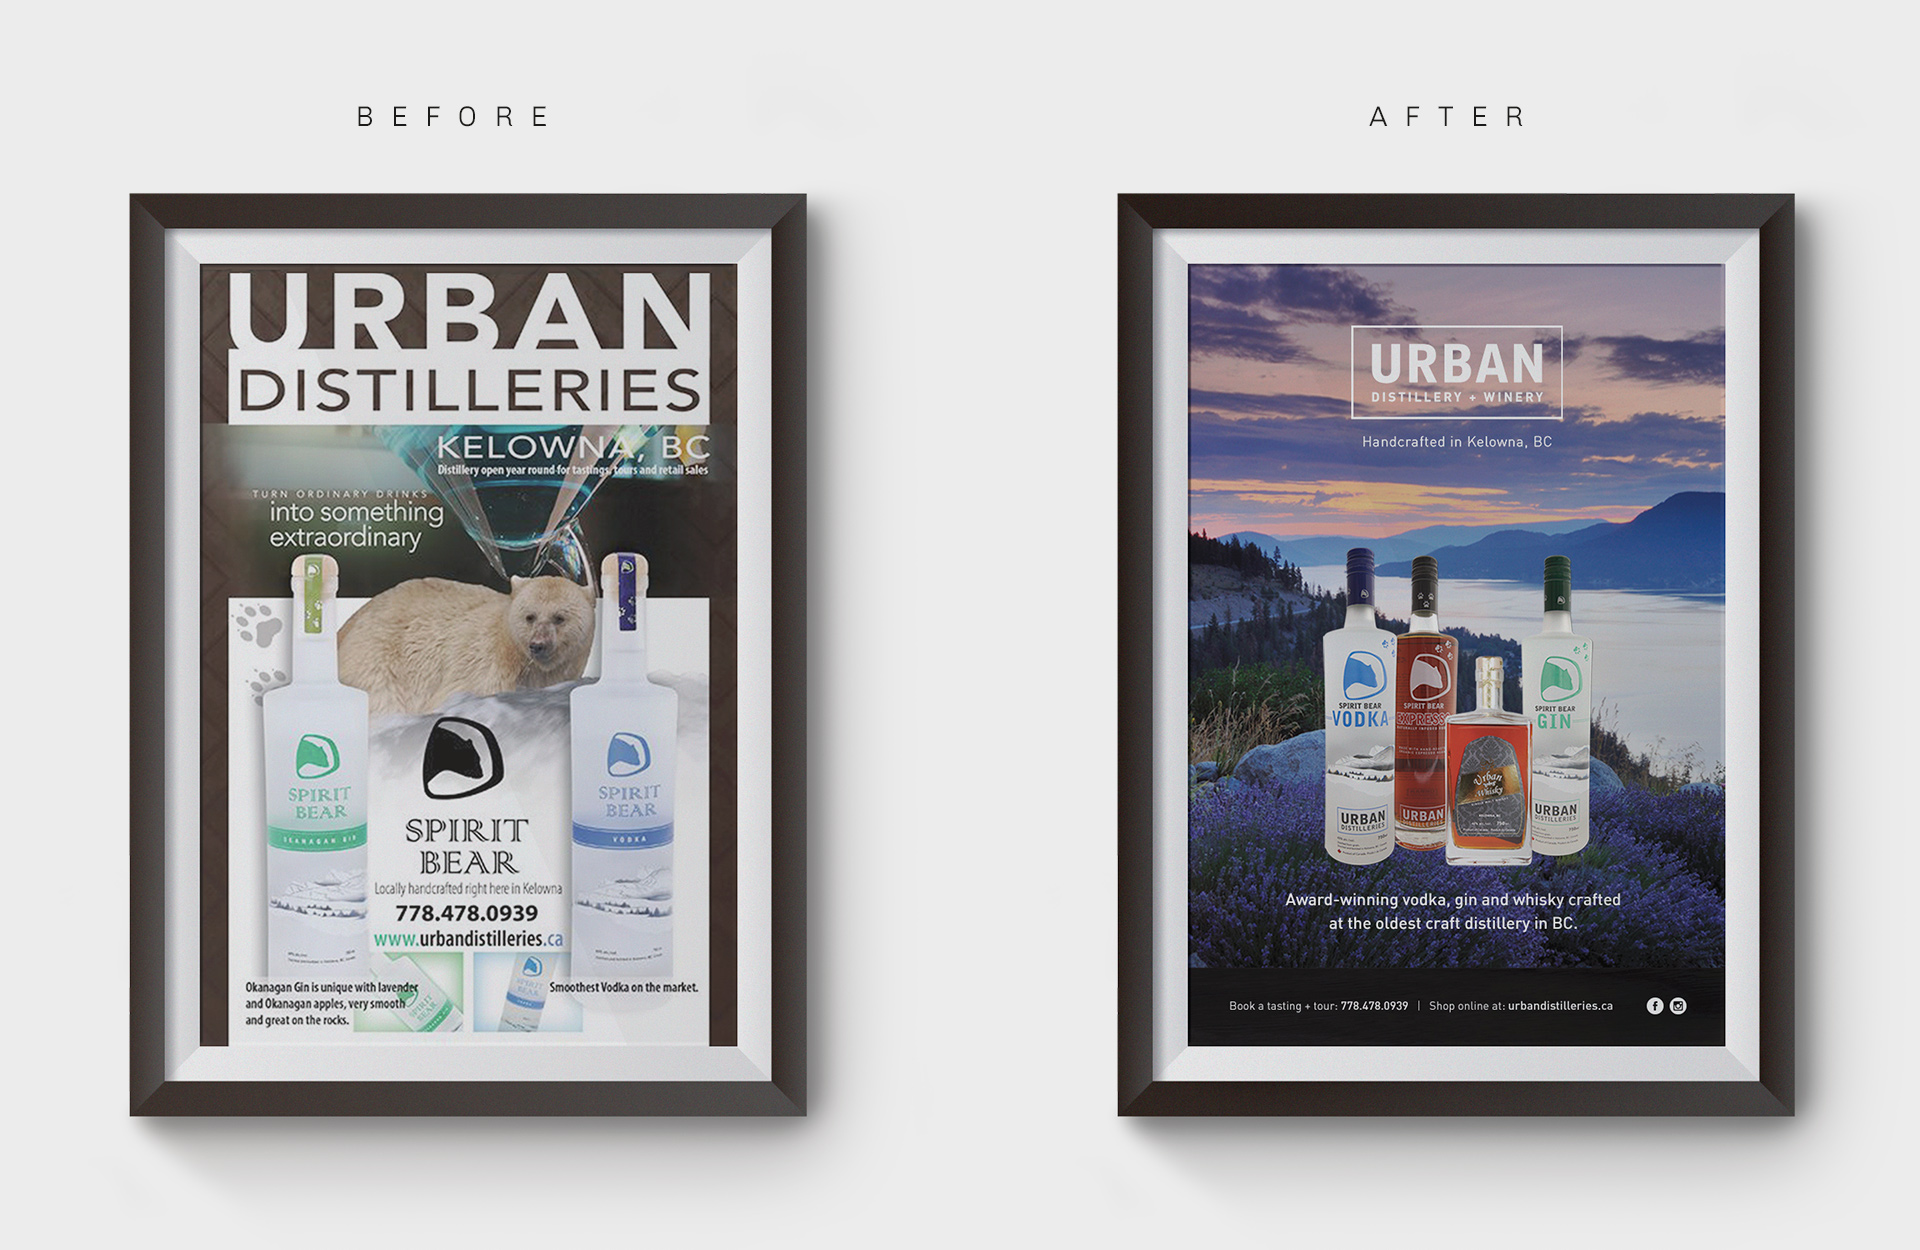 Urban Distilleries Graphic Design Brand Identity Posters Before & After